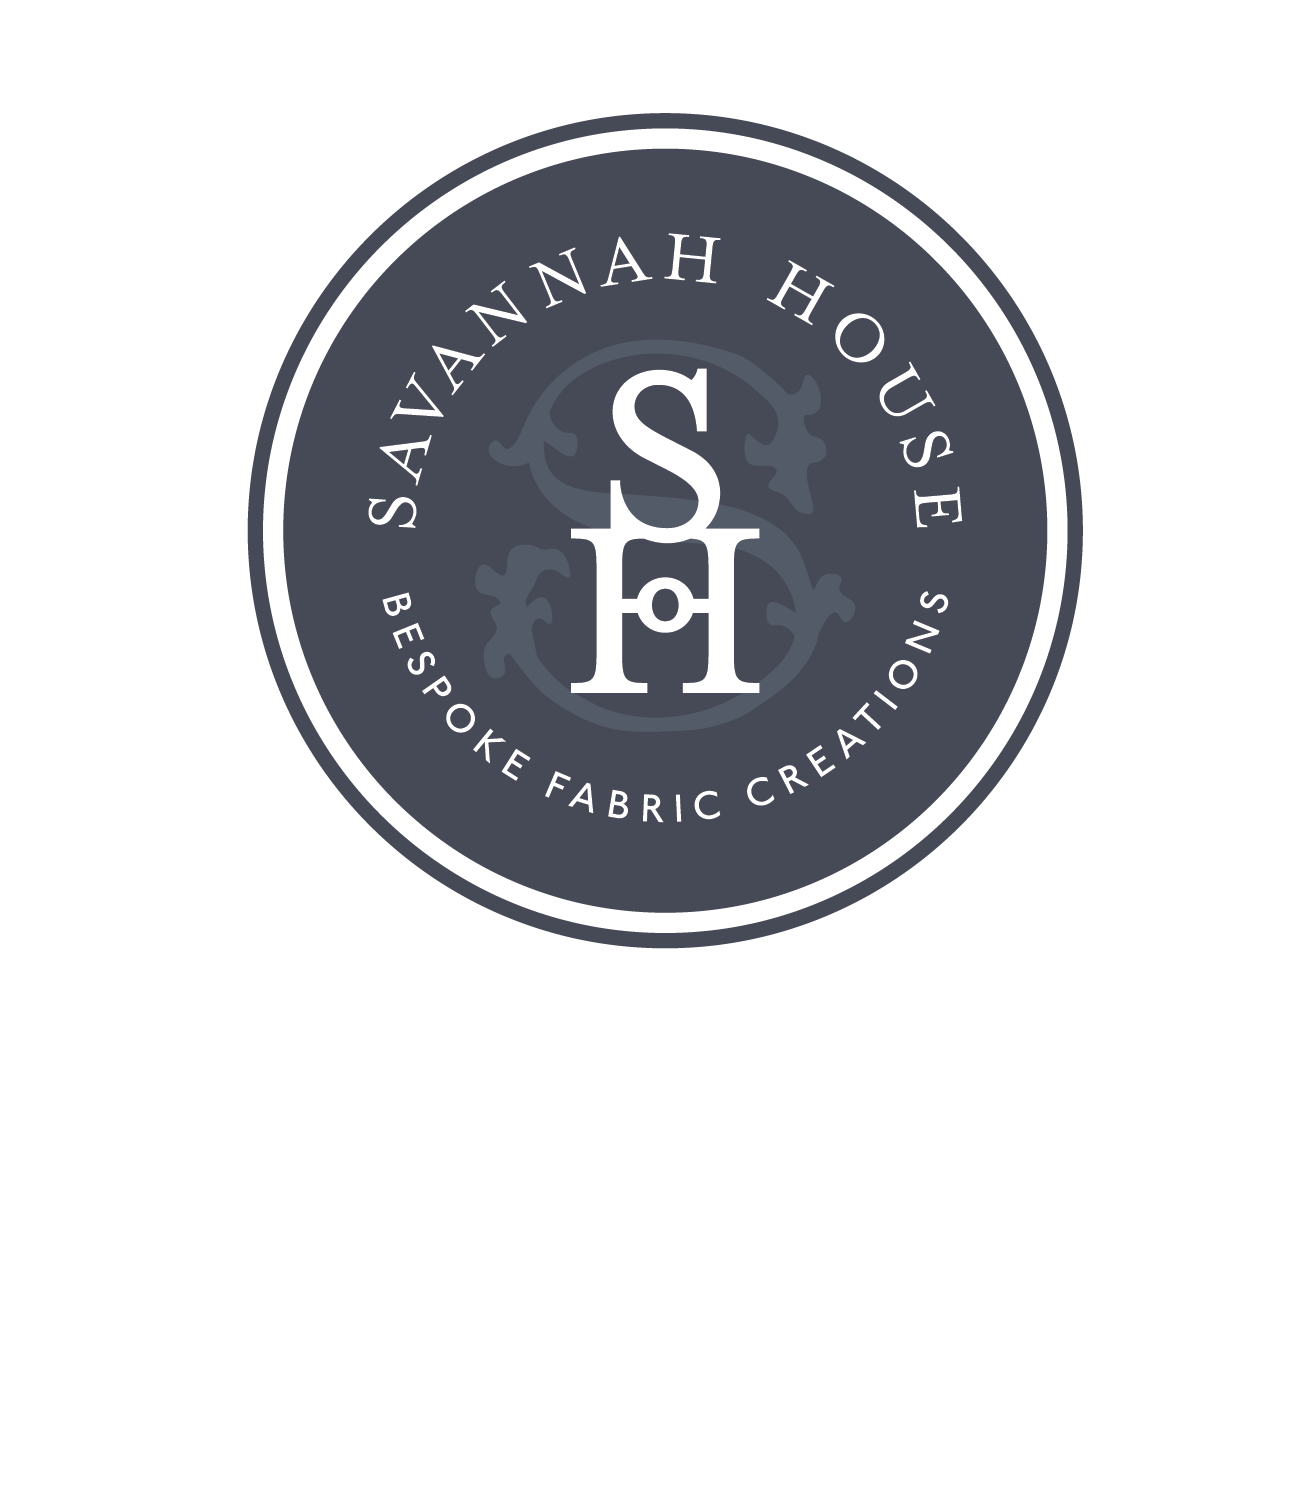 savannah-house-logo.jpg